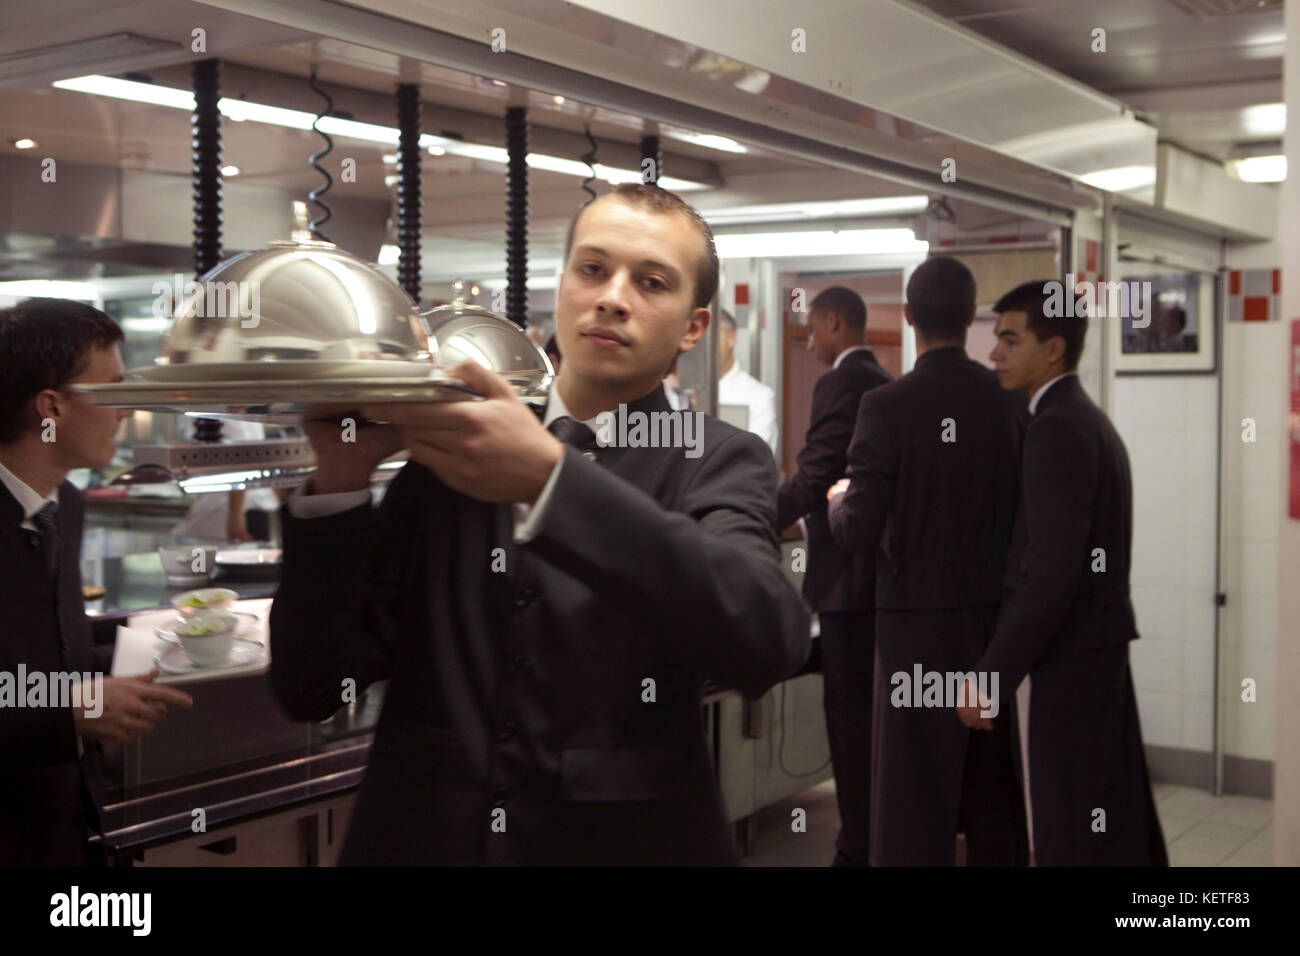 Europe-France-Paris-Plaza-Athene-Restaurant Aain Ducasse. The waiters coming out of the Kitchen - Stock Image